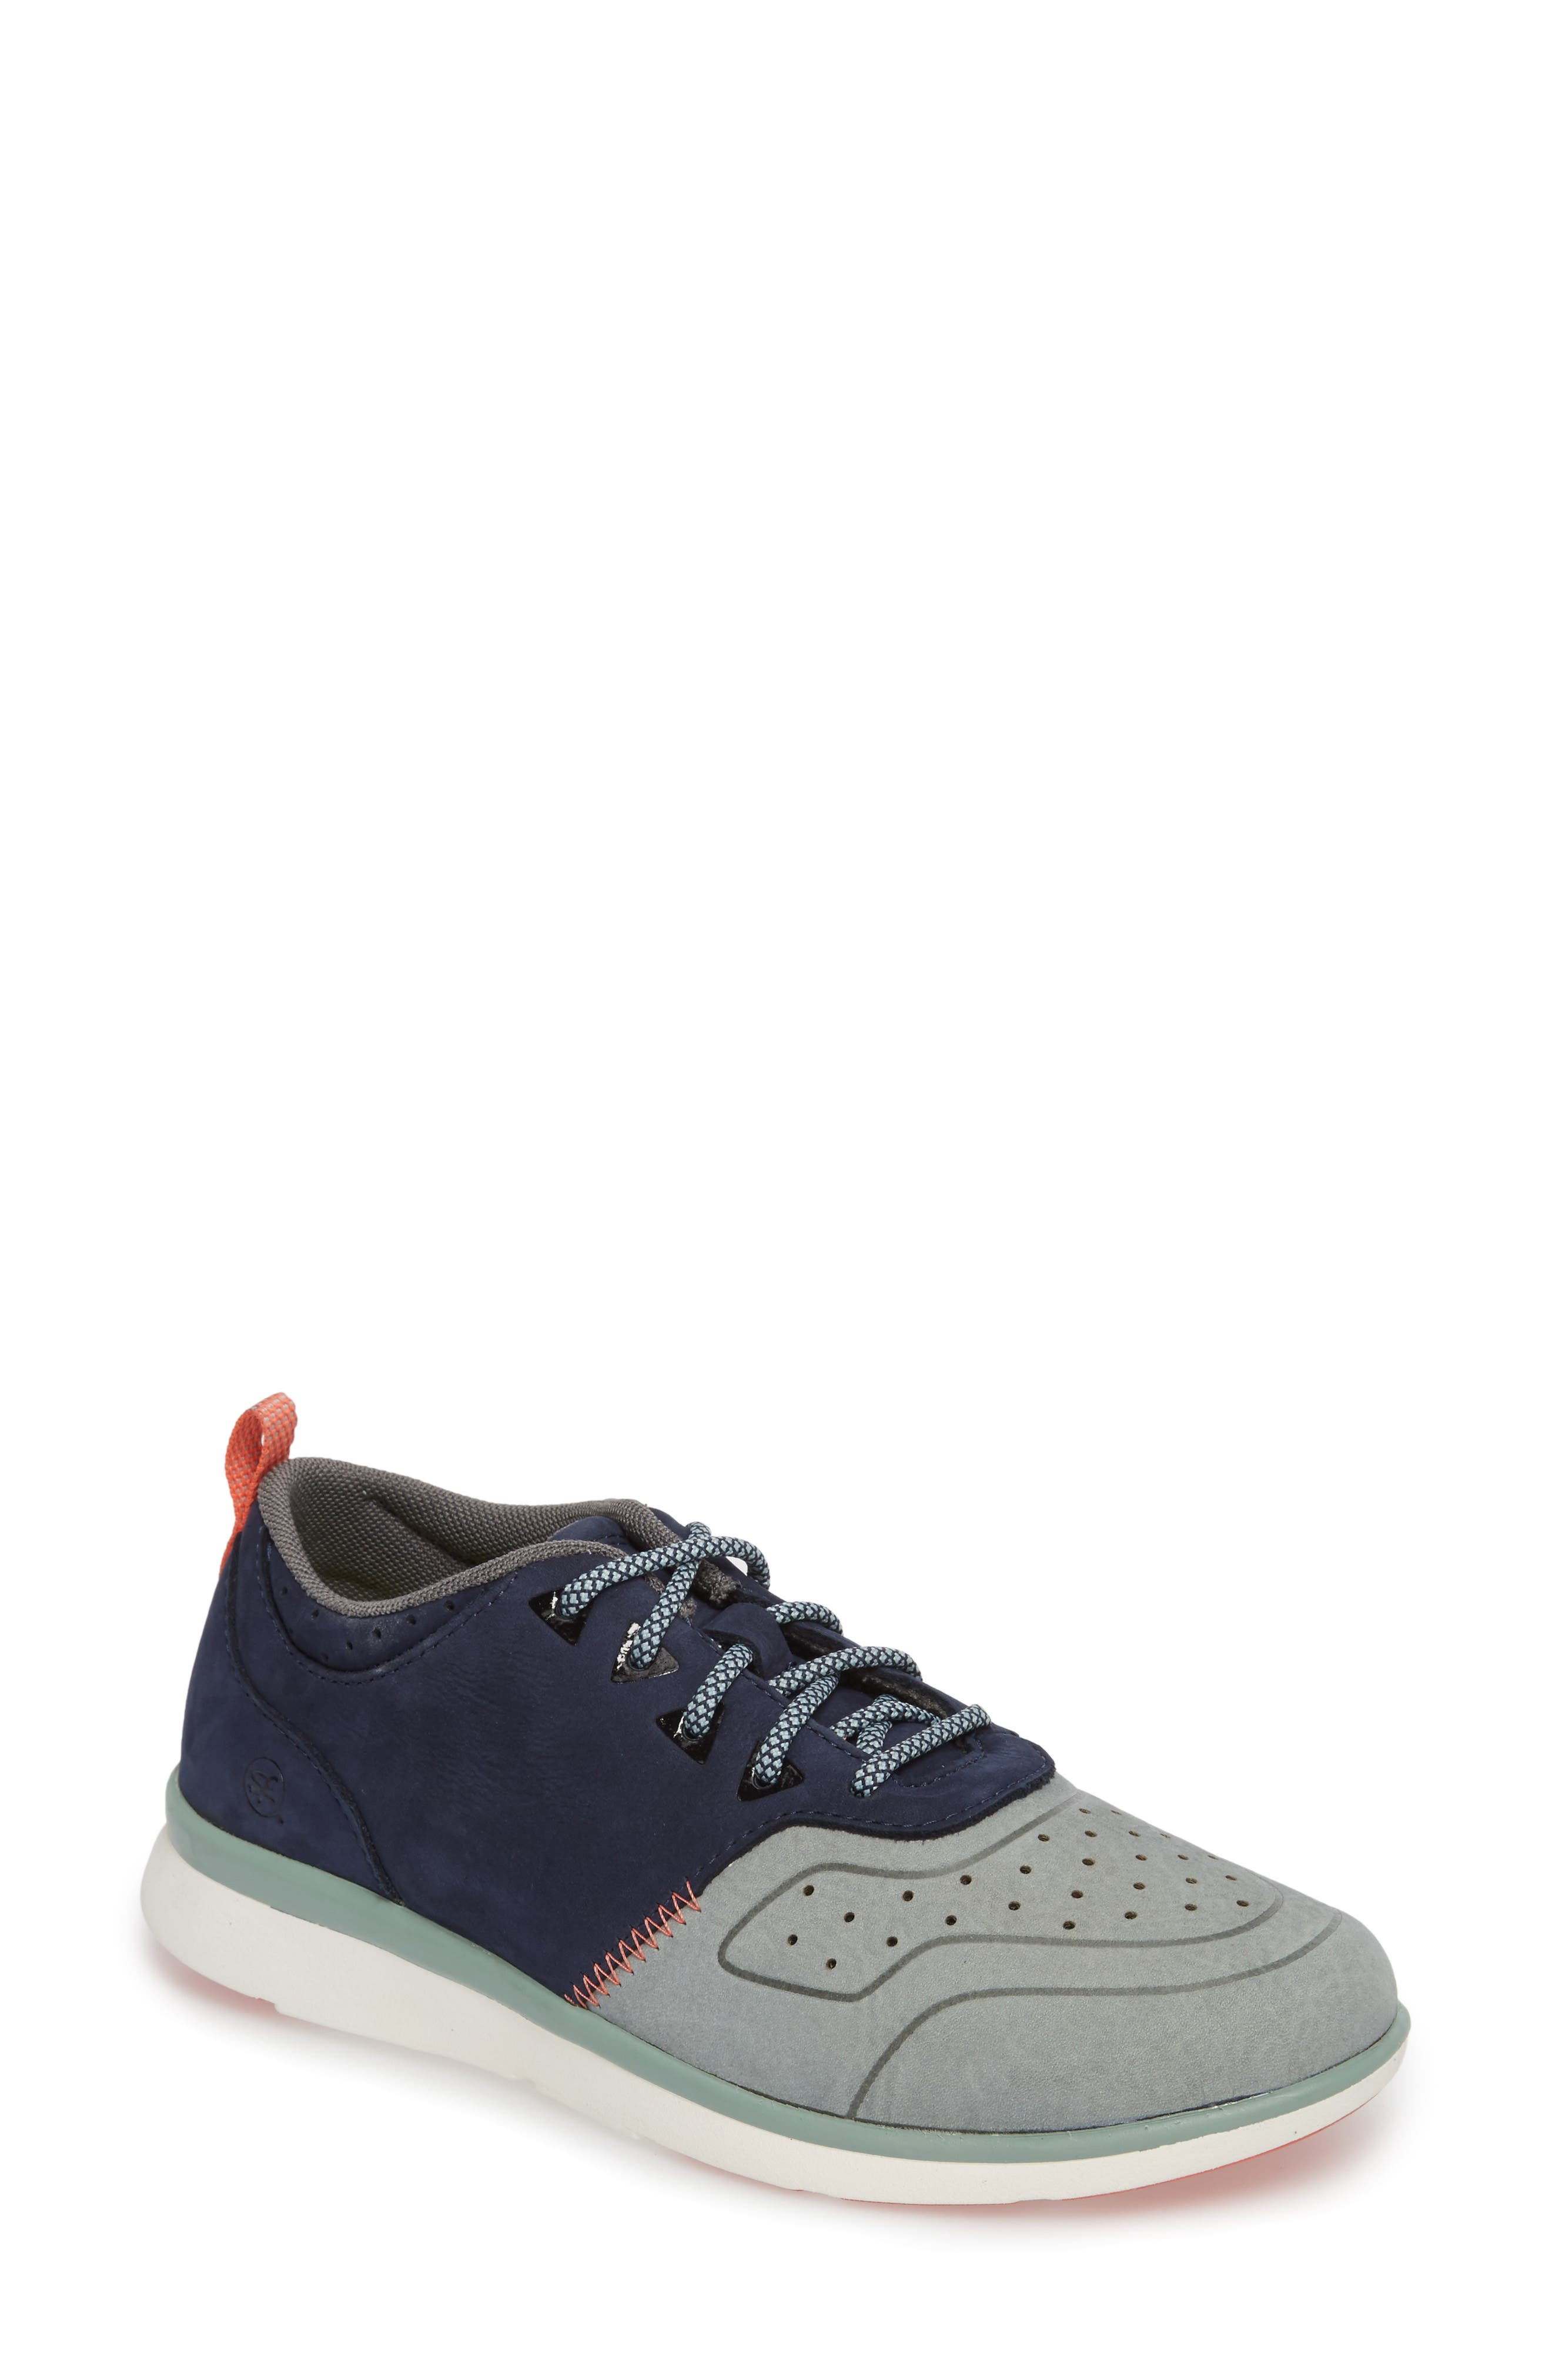 Beech Sneaker,                             Main thumbnail 1, color,                             Blue Leather